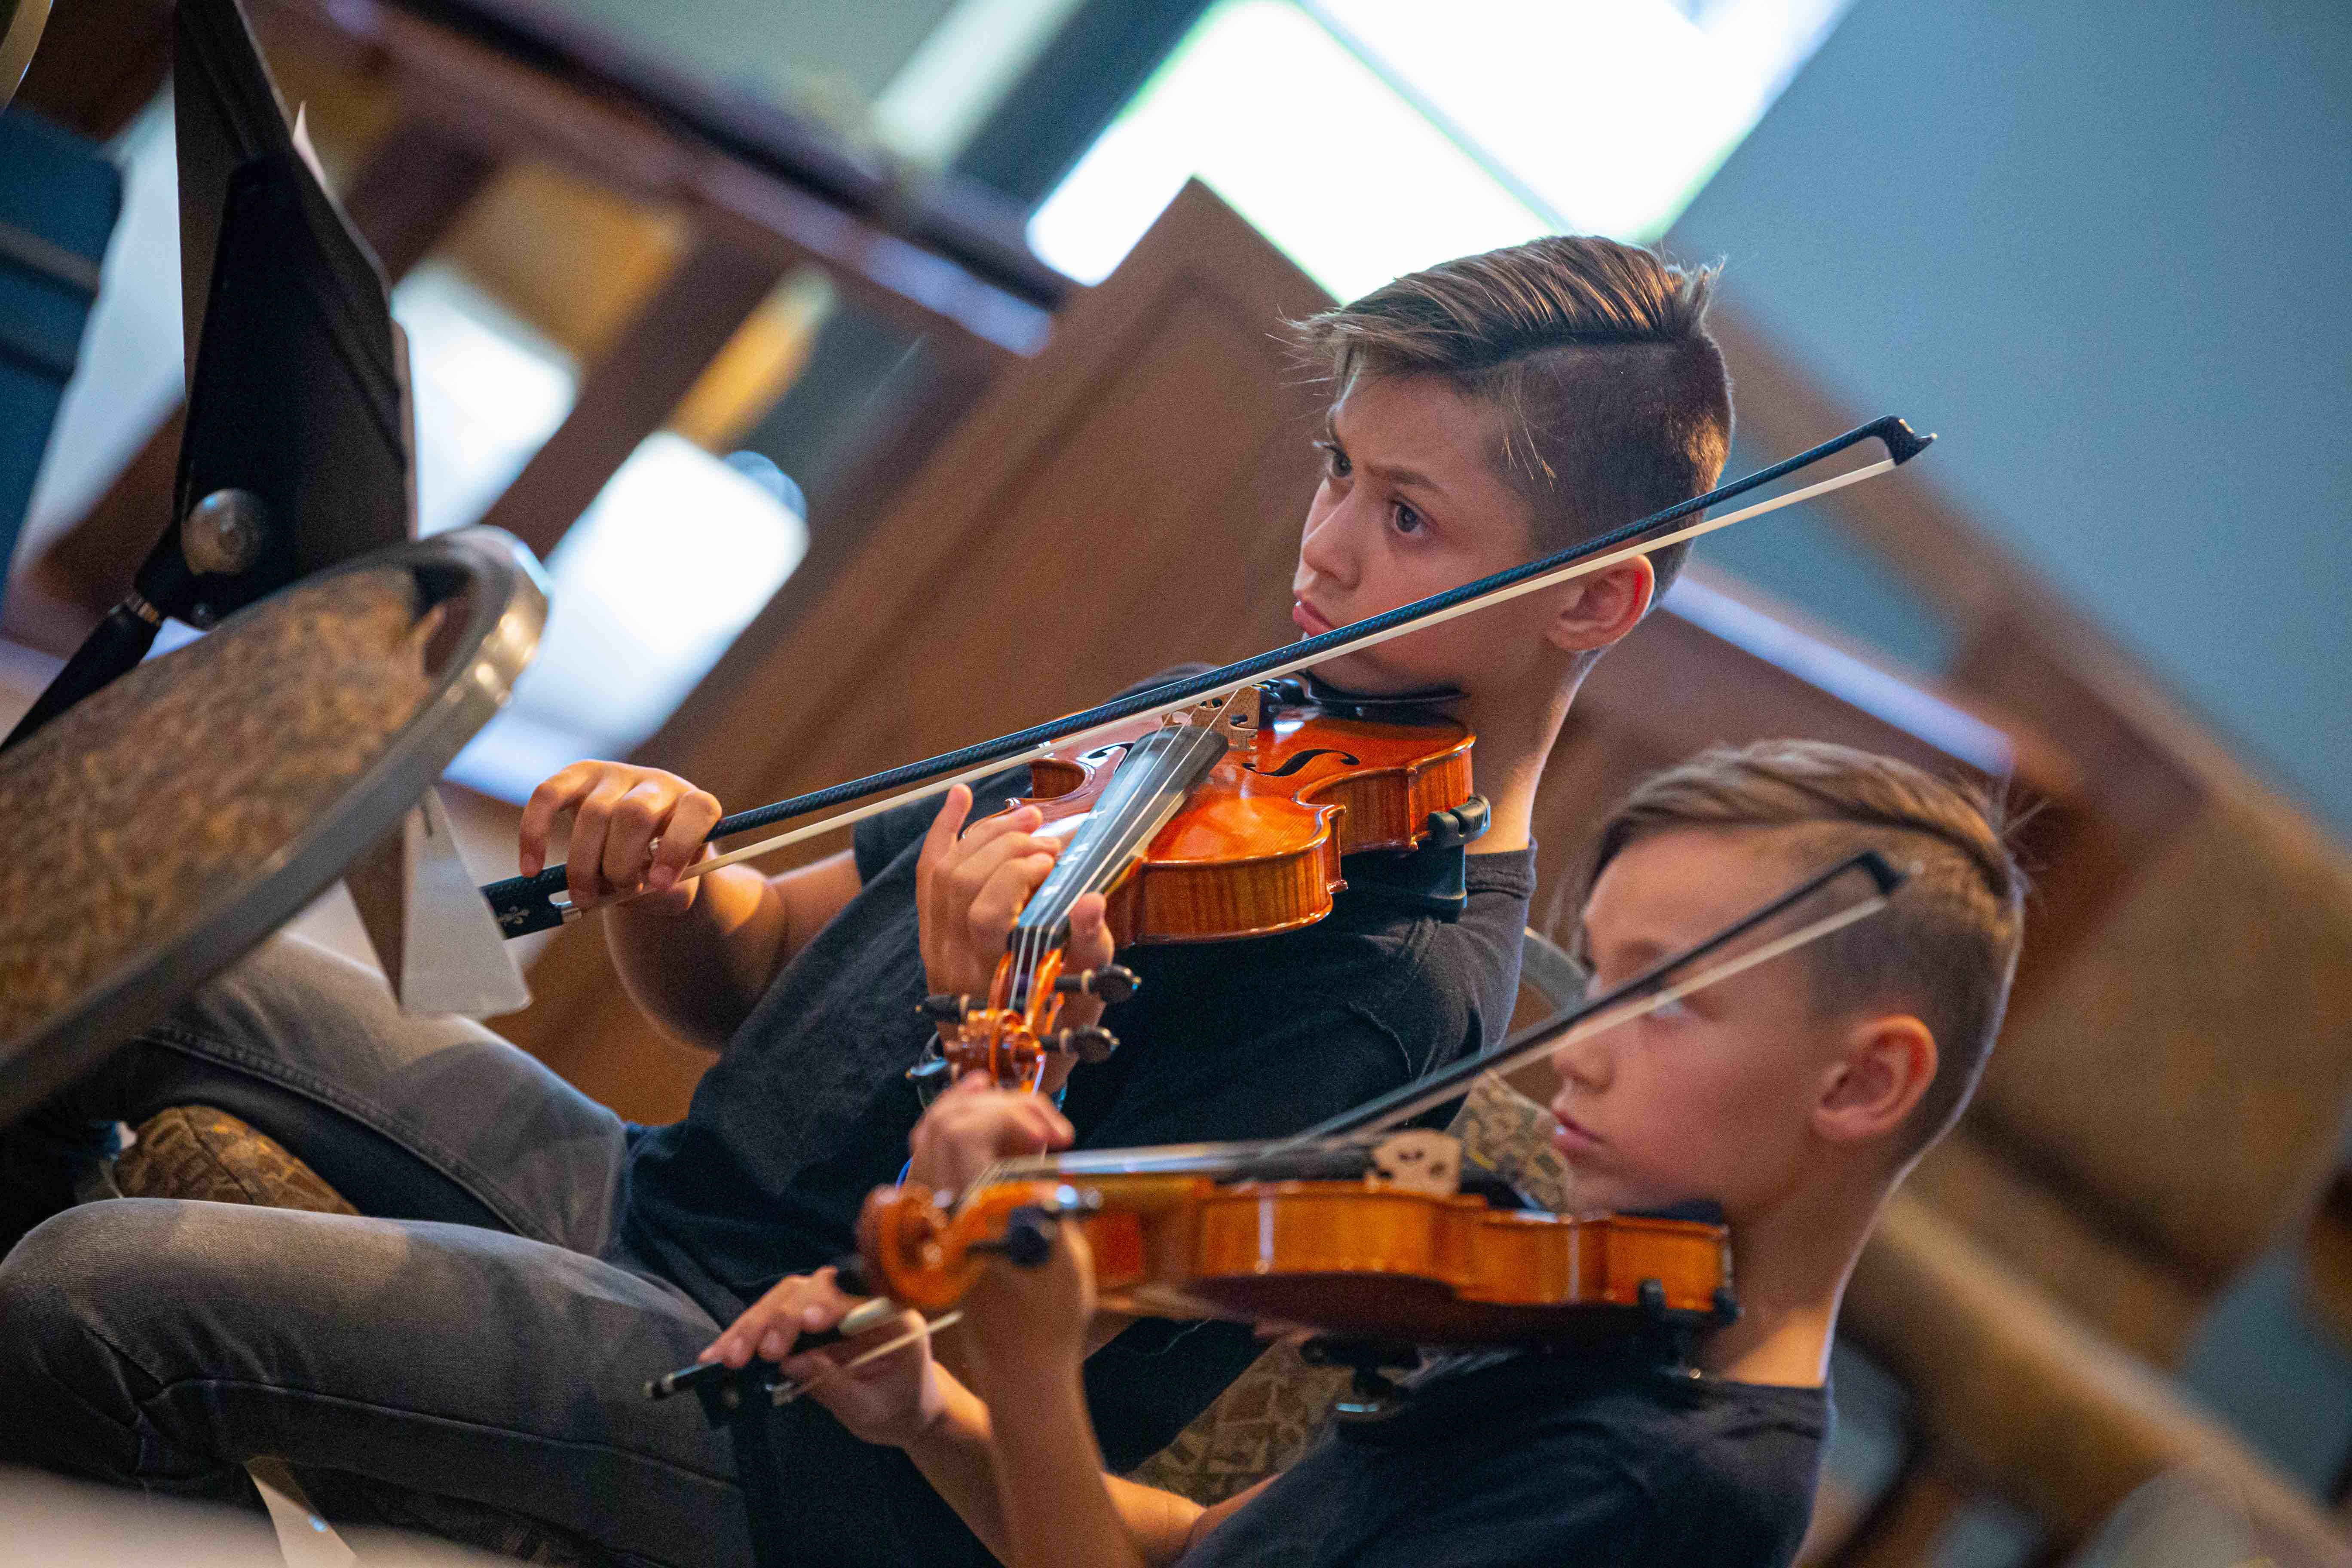 SINFONIA GULF COAST ANNOUNCES CALL FORSTUDENT MUSICIANS TO JOINSINFONIA